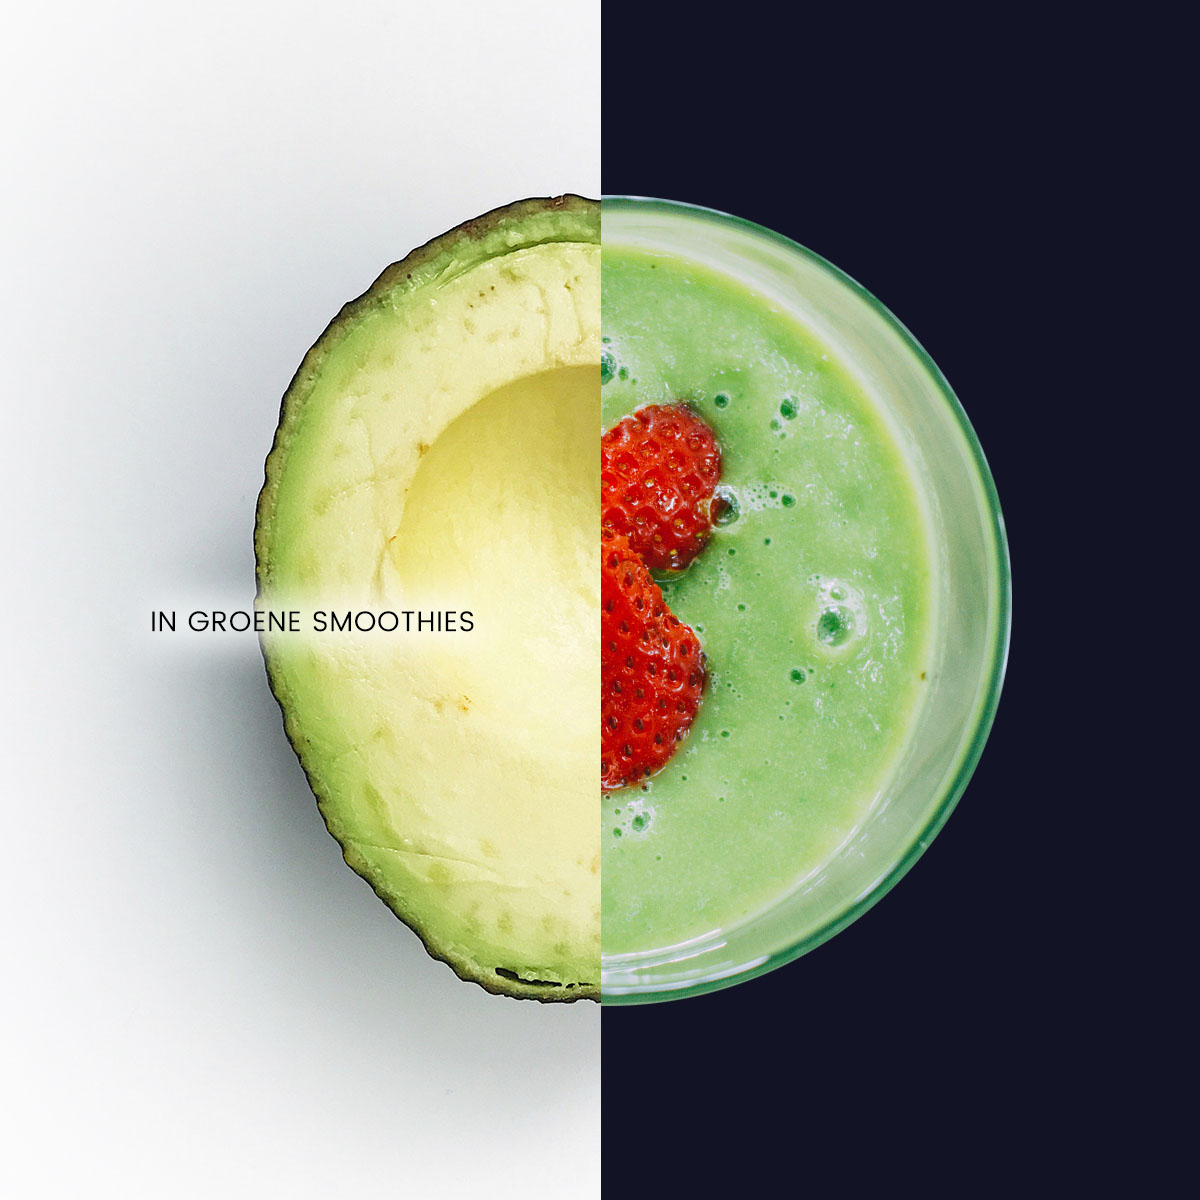 Empty the Fridge - Avocado in groene smoothies